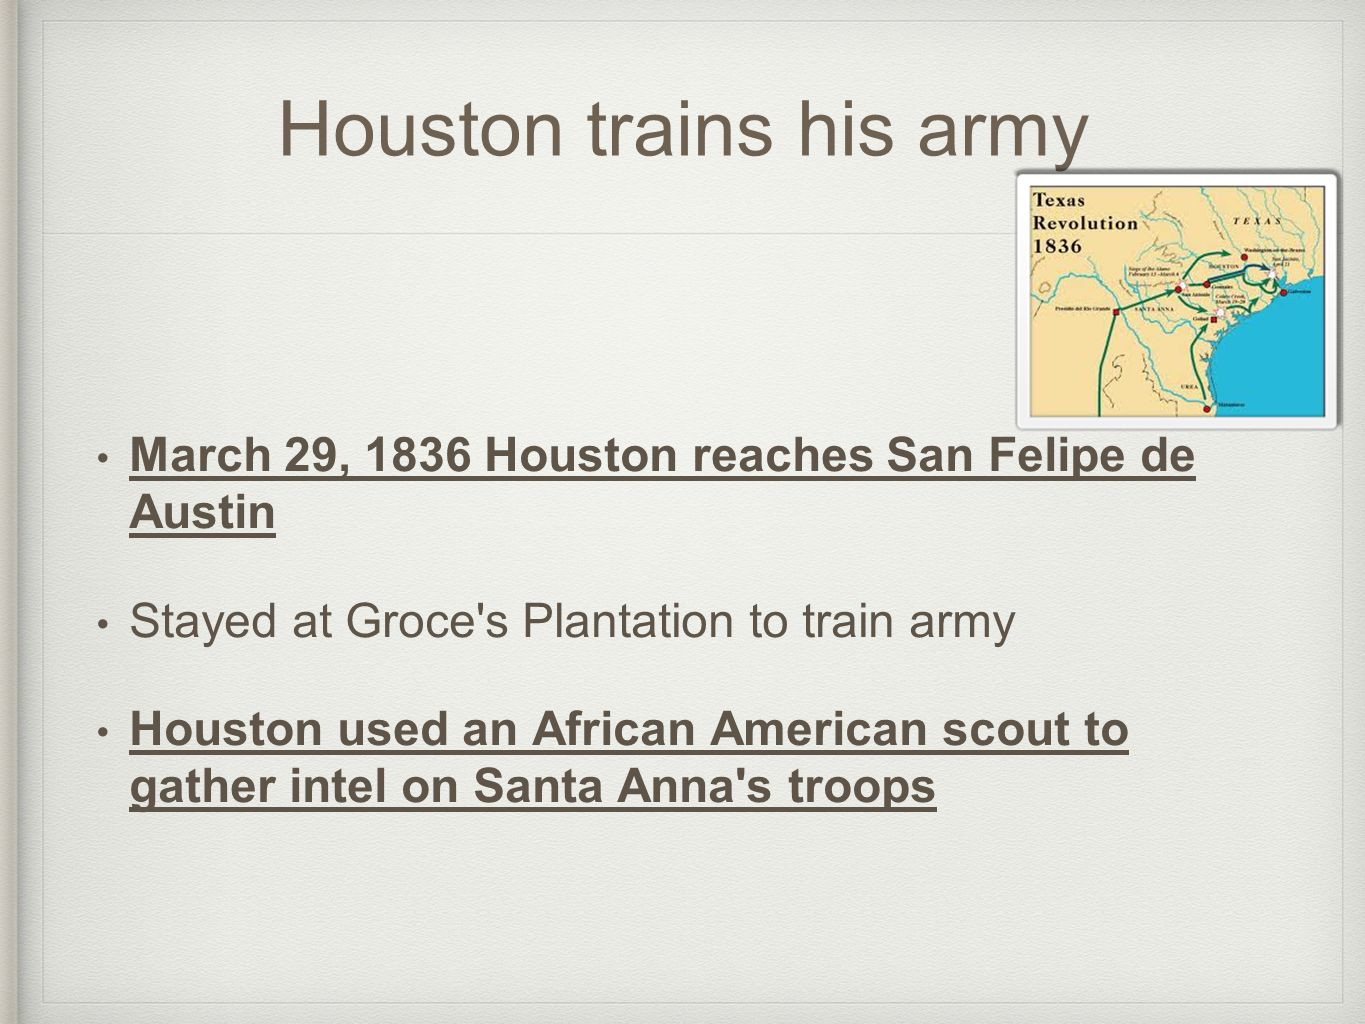 Houston trains his army March 29, 1836 Houston reaches San Felipe de Austin Stayed at Groce's Plantation to train army Houston used an African America